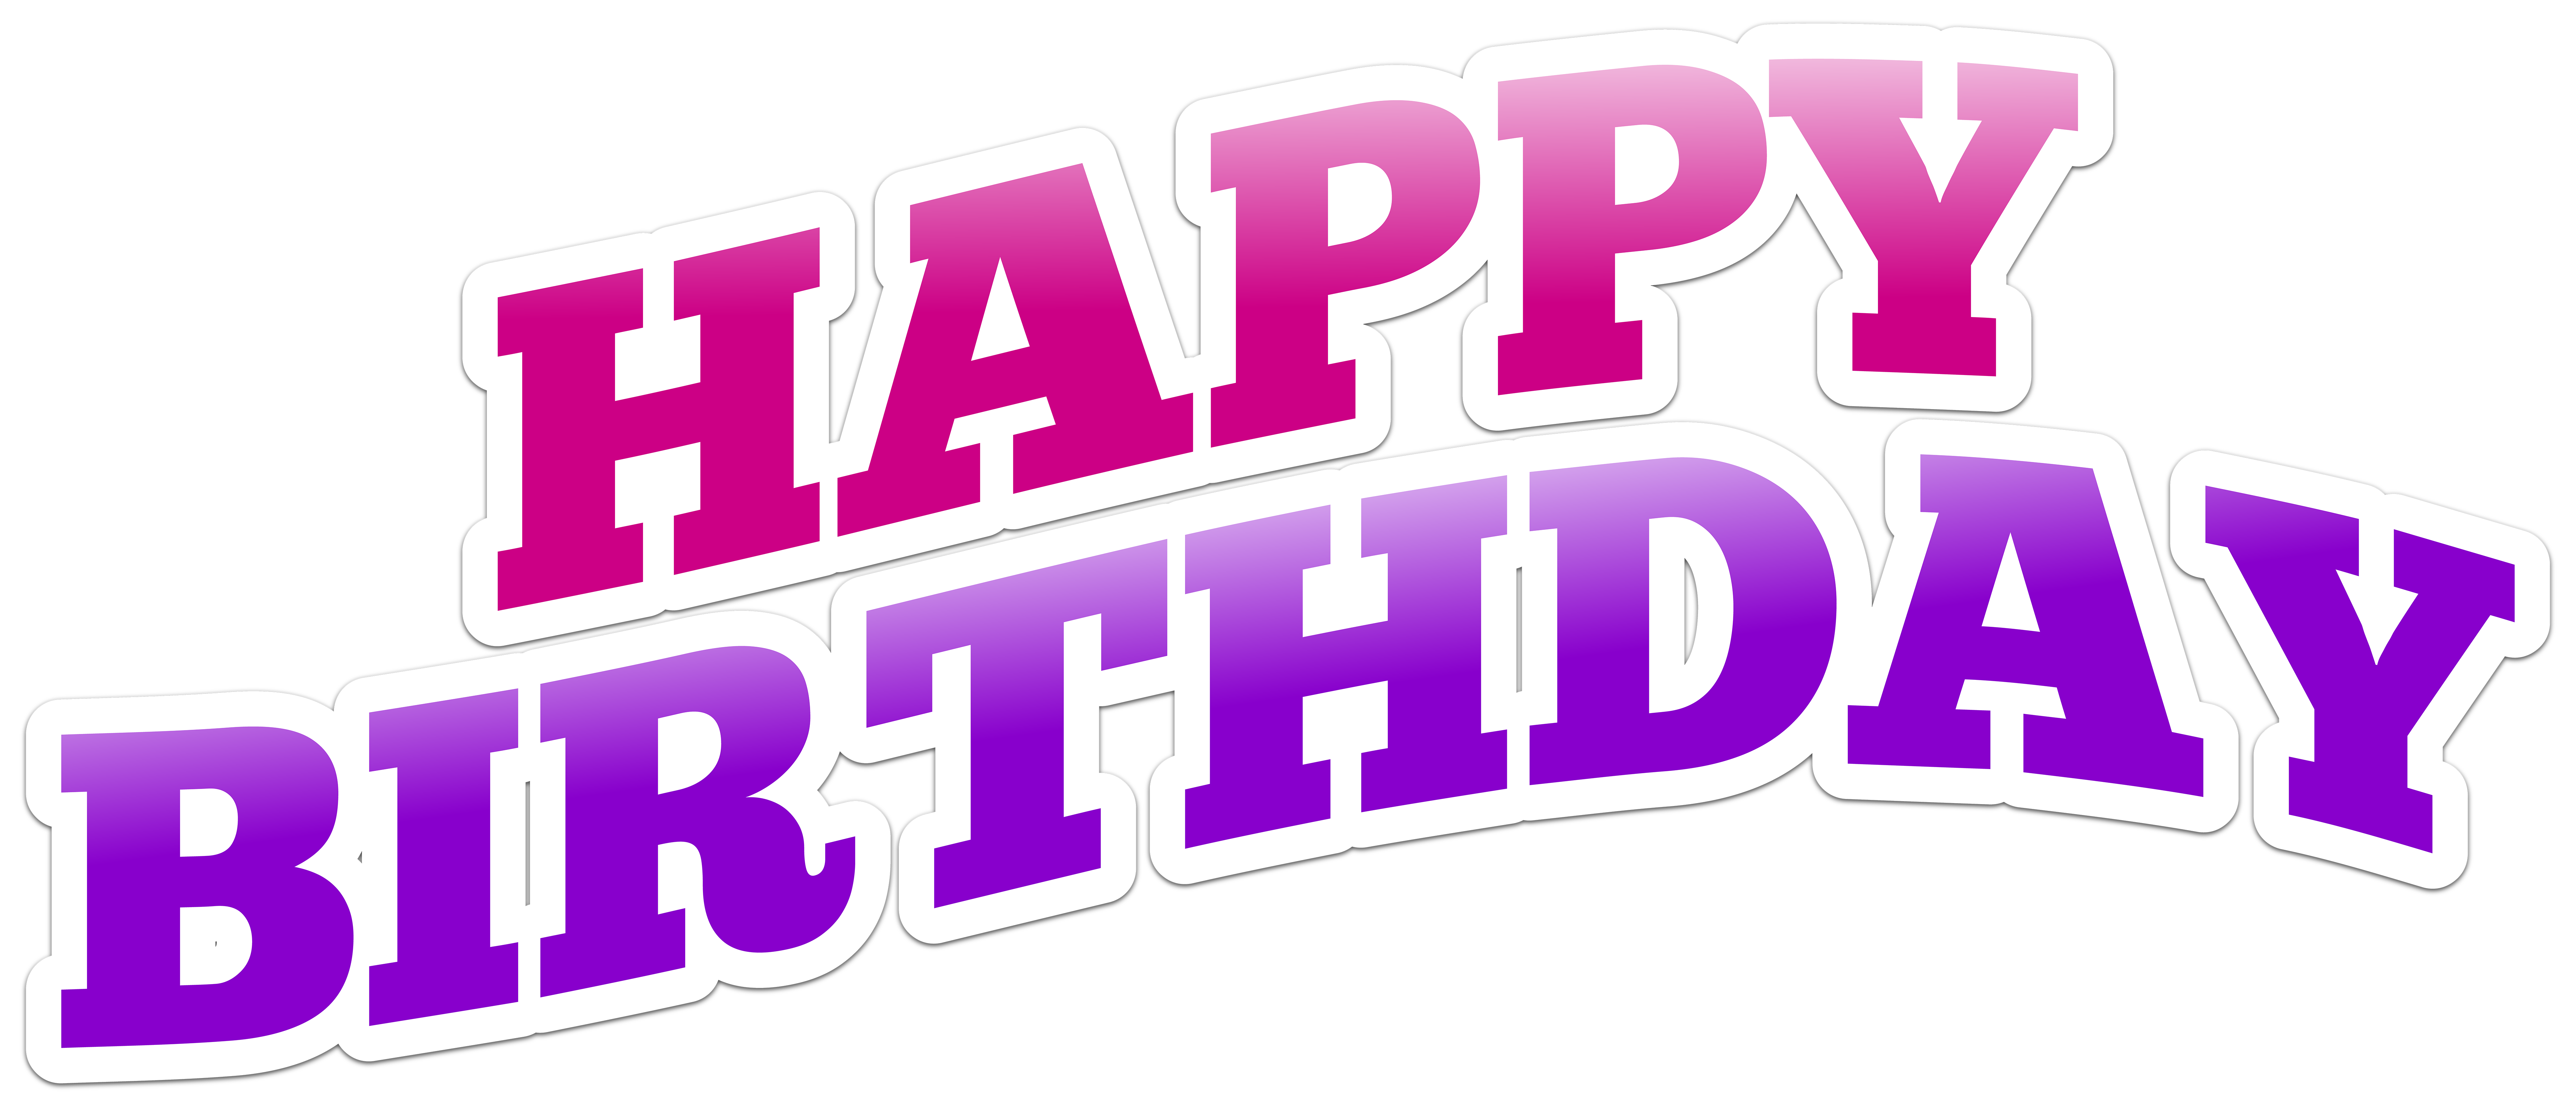 Birthday text png. Happy clip art image